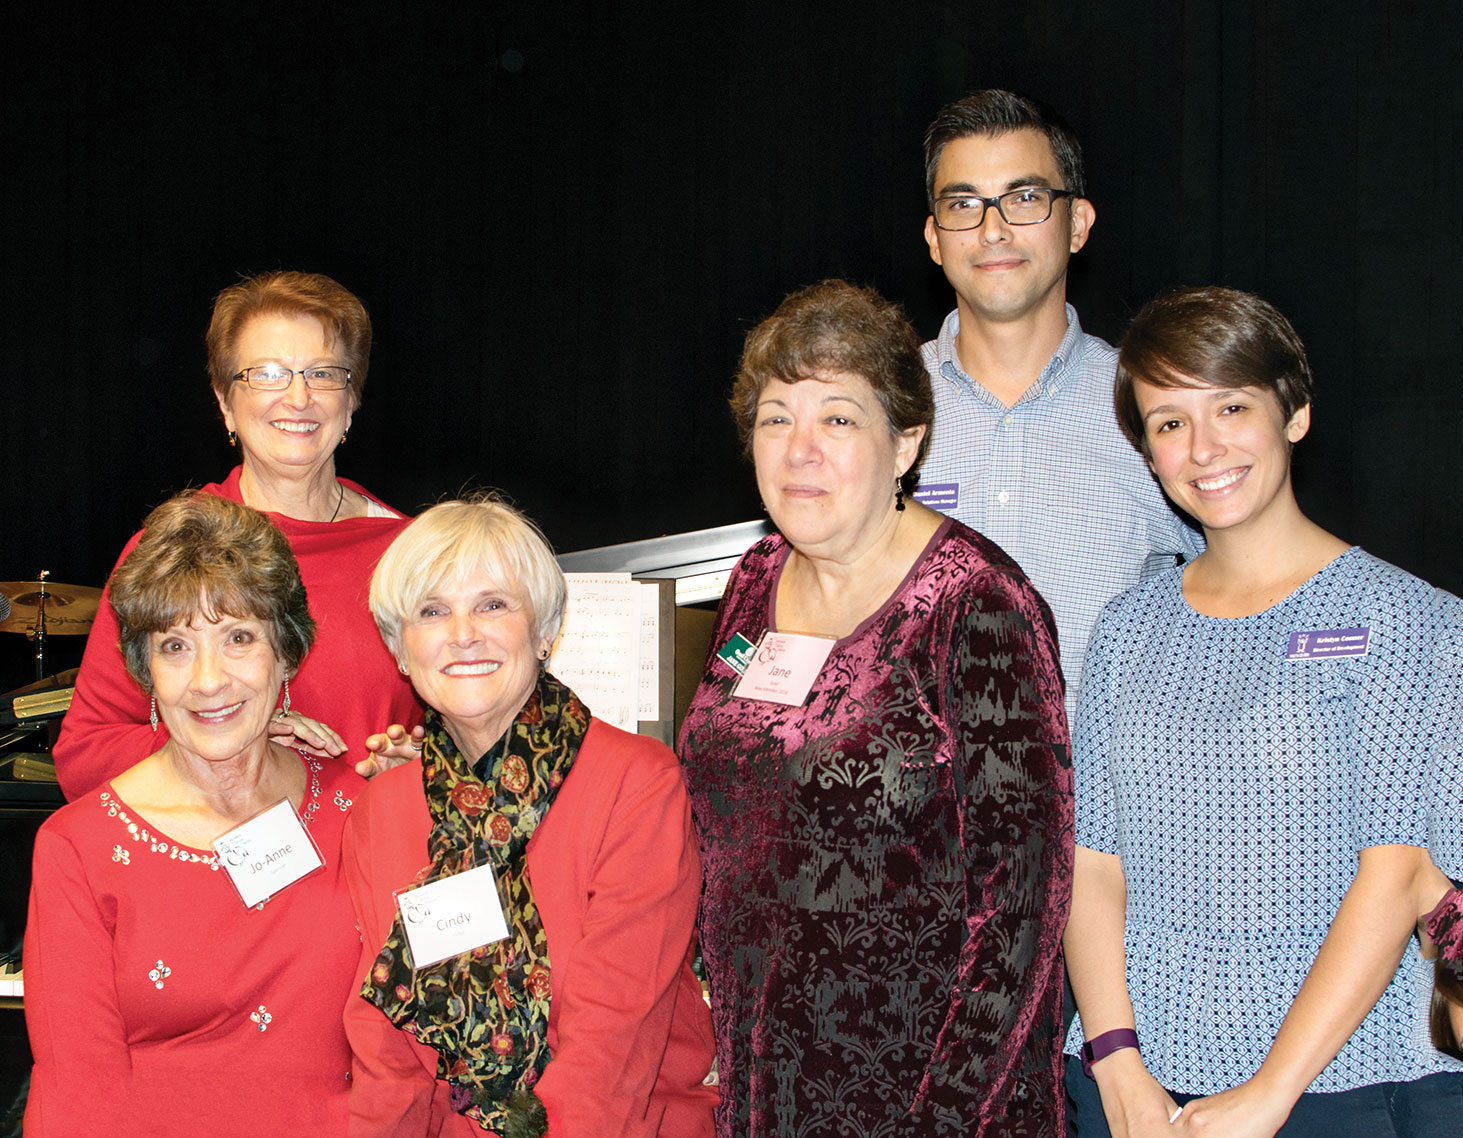 TWOQC volunteers, left to right: Jo-Anne Spencer, SueAnn Obremski, Cindy Hogg and Jane Gold with YOTO representatives Daniel Armenta and Kristyn Conner; photo by Eileen Sykora